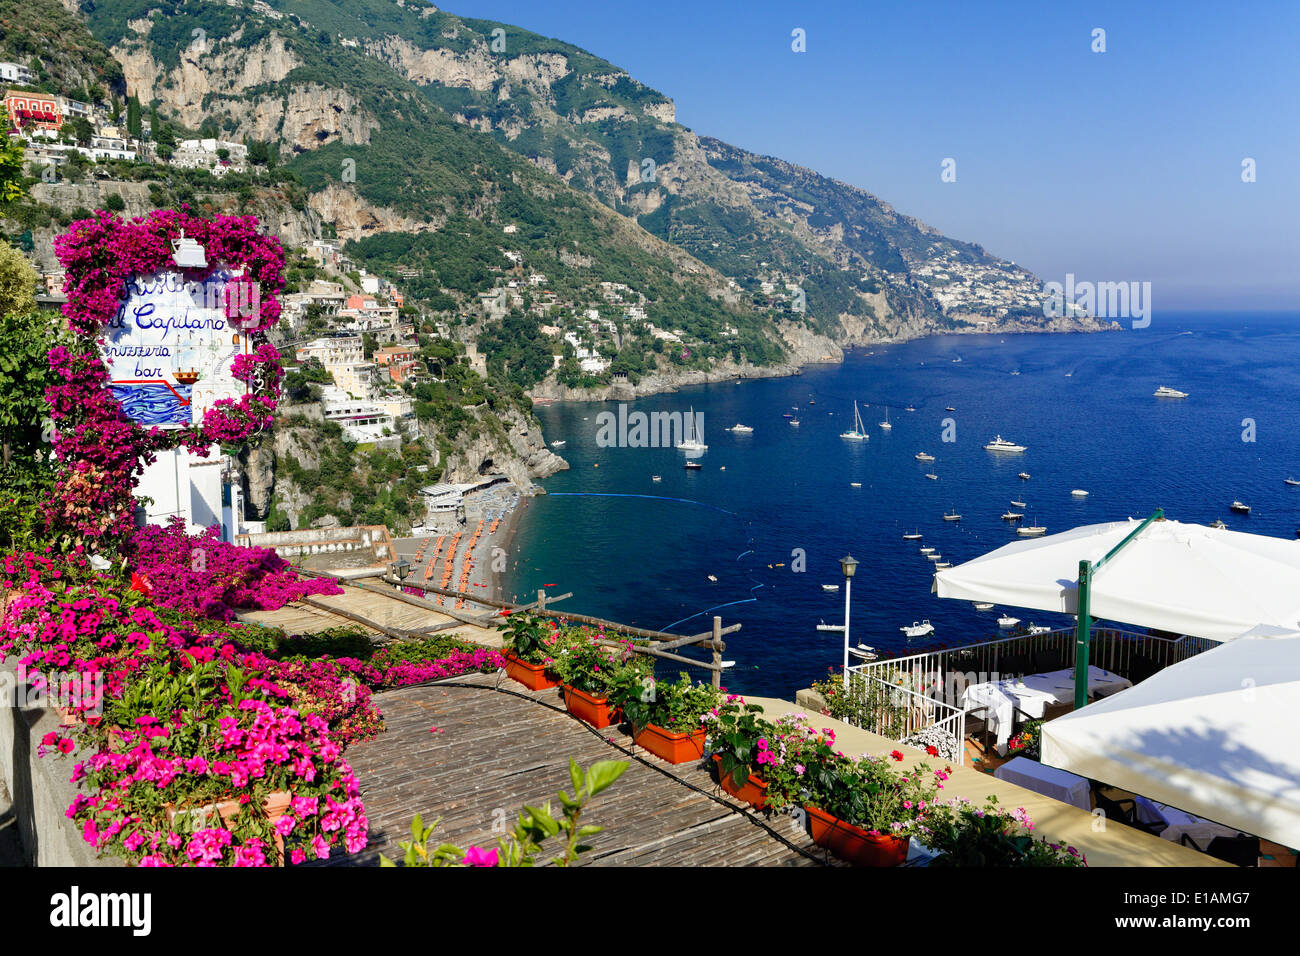 High Angle View of a Beach and Coast from a Hillside Terrace, Positano, Campania, Italy - Stock Image